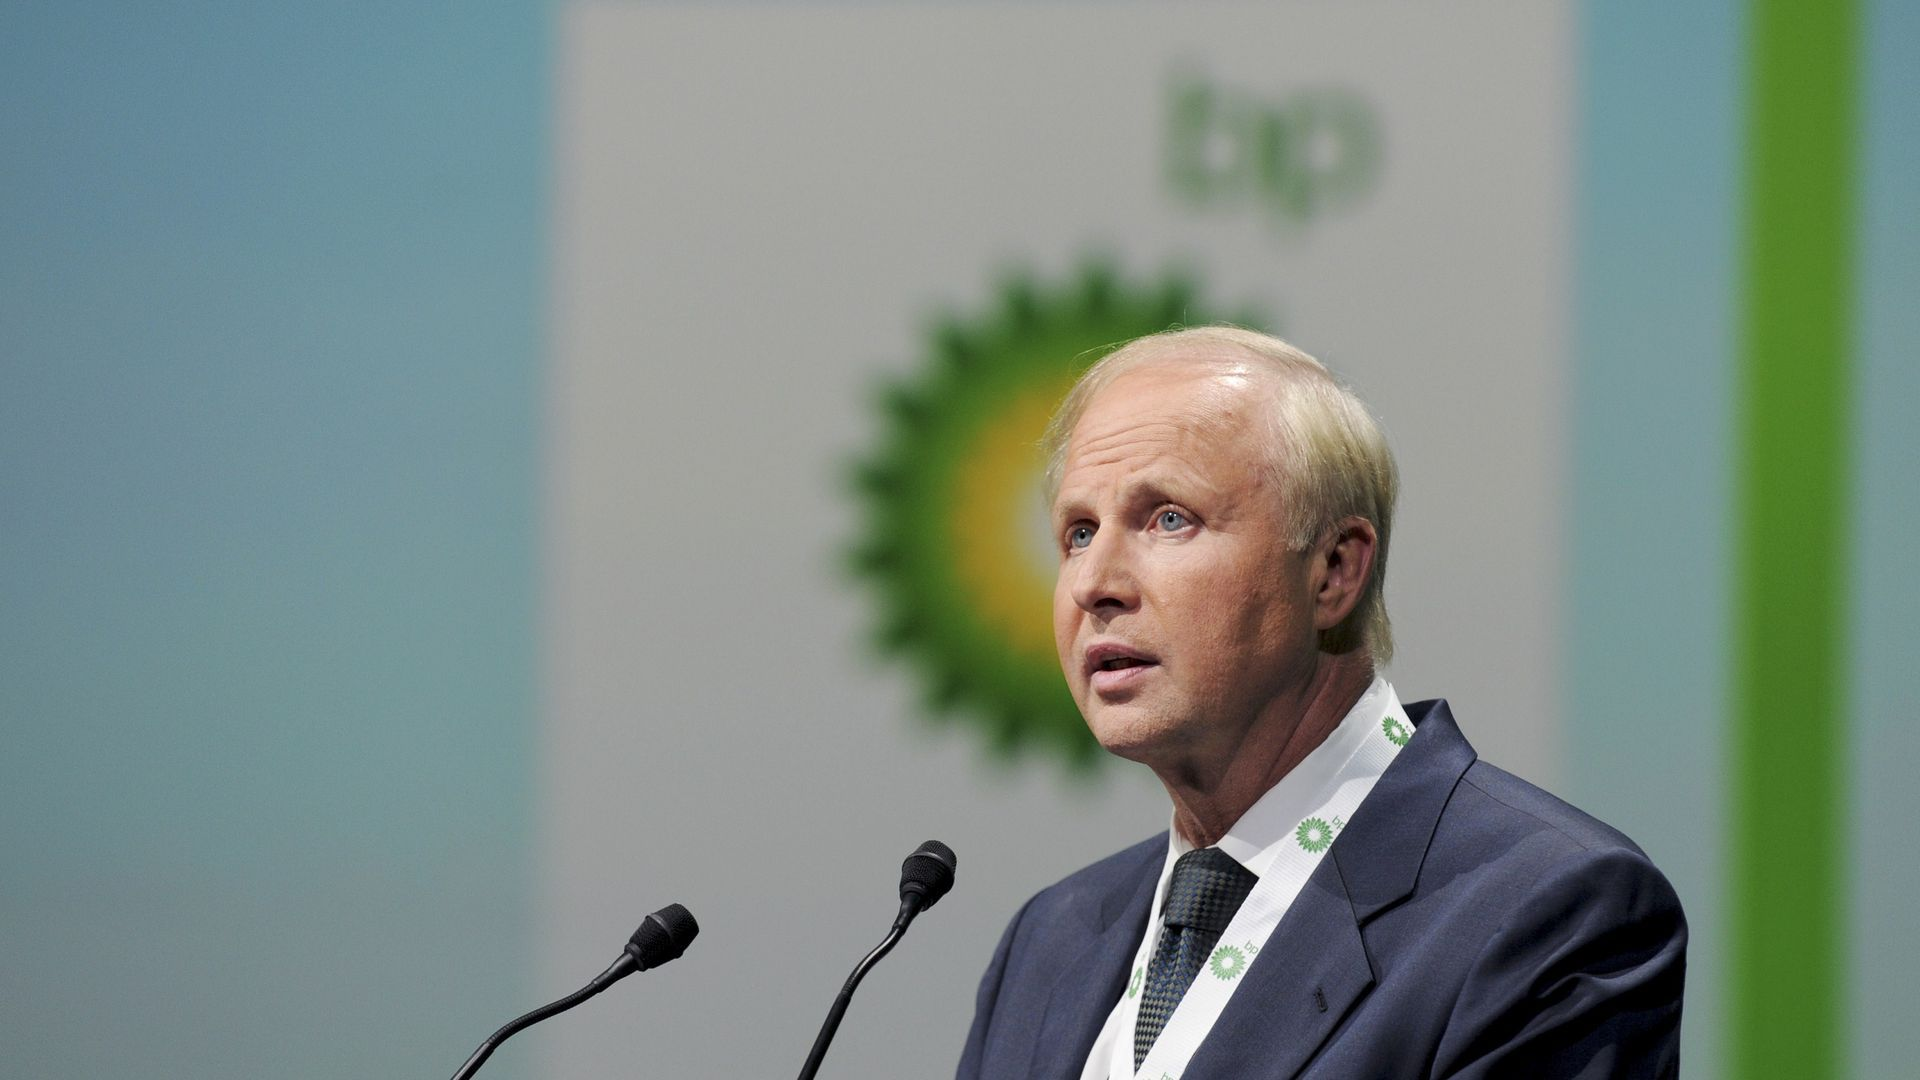 BP CEO Bob Dudley in 2015. Photo: Eric Piermont/AFP/Getty Images